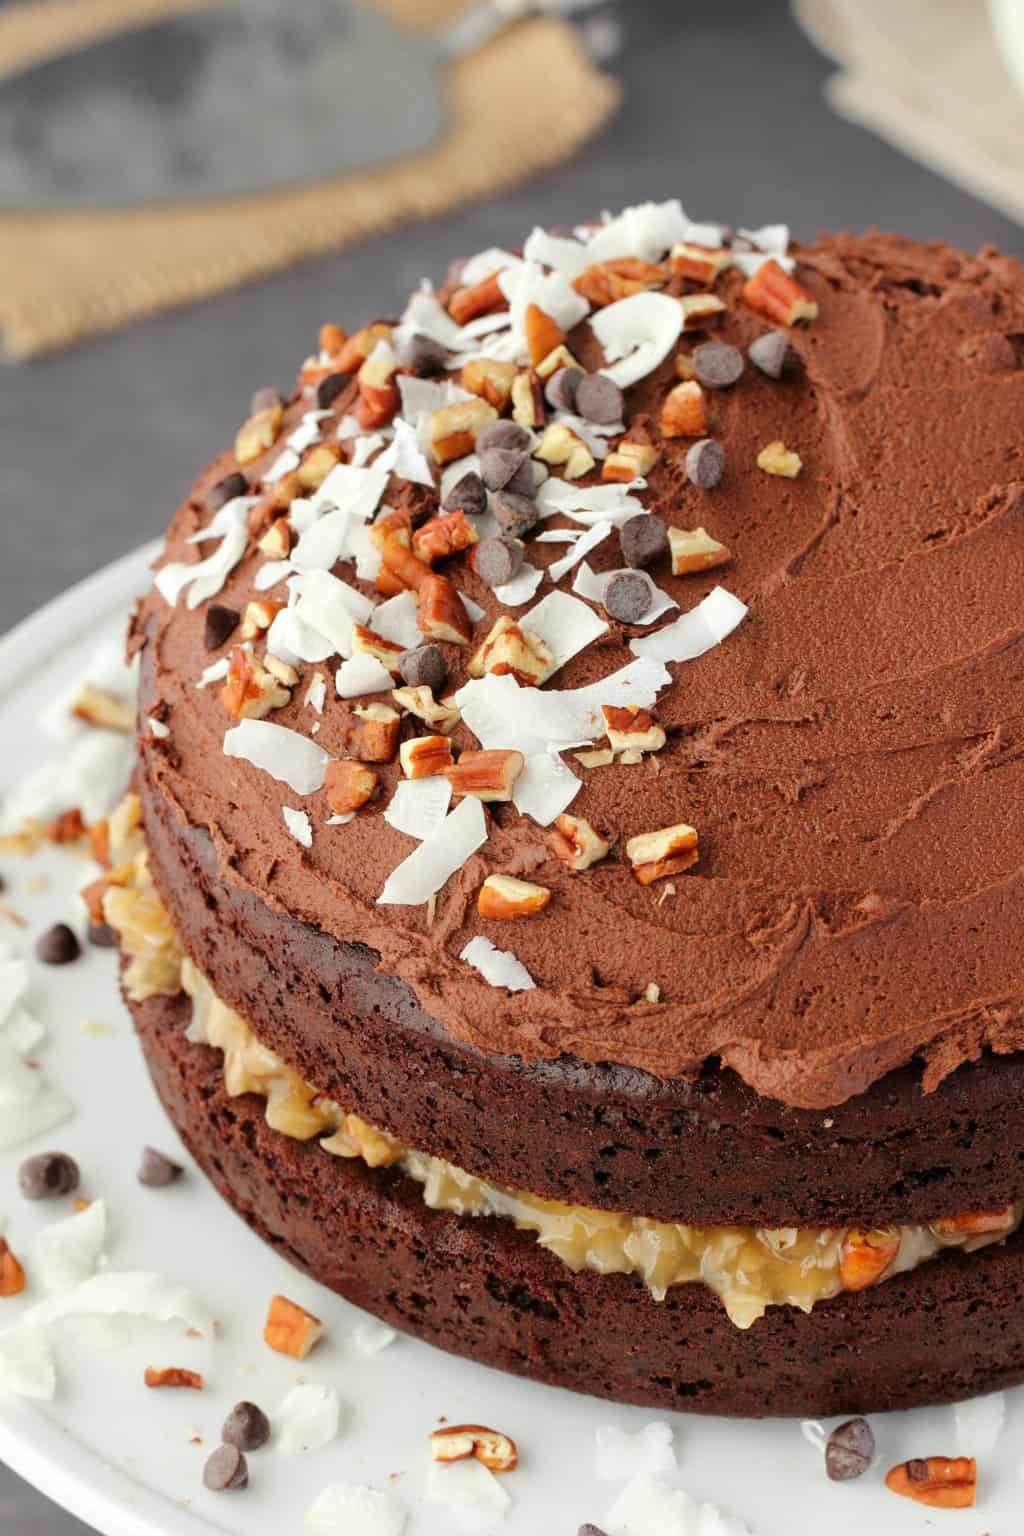 Vegan German chocolate cake decorated with coconut flakes, chocolate chips and chopped pecans, on a white cake stand.